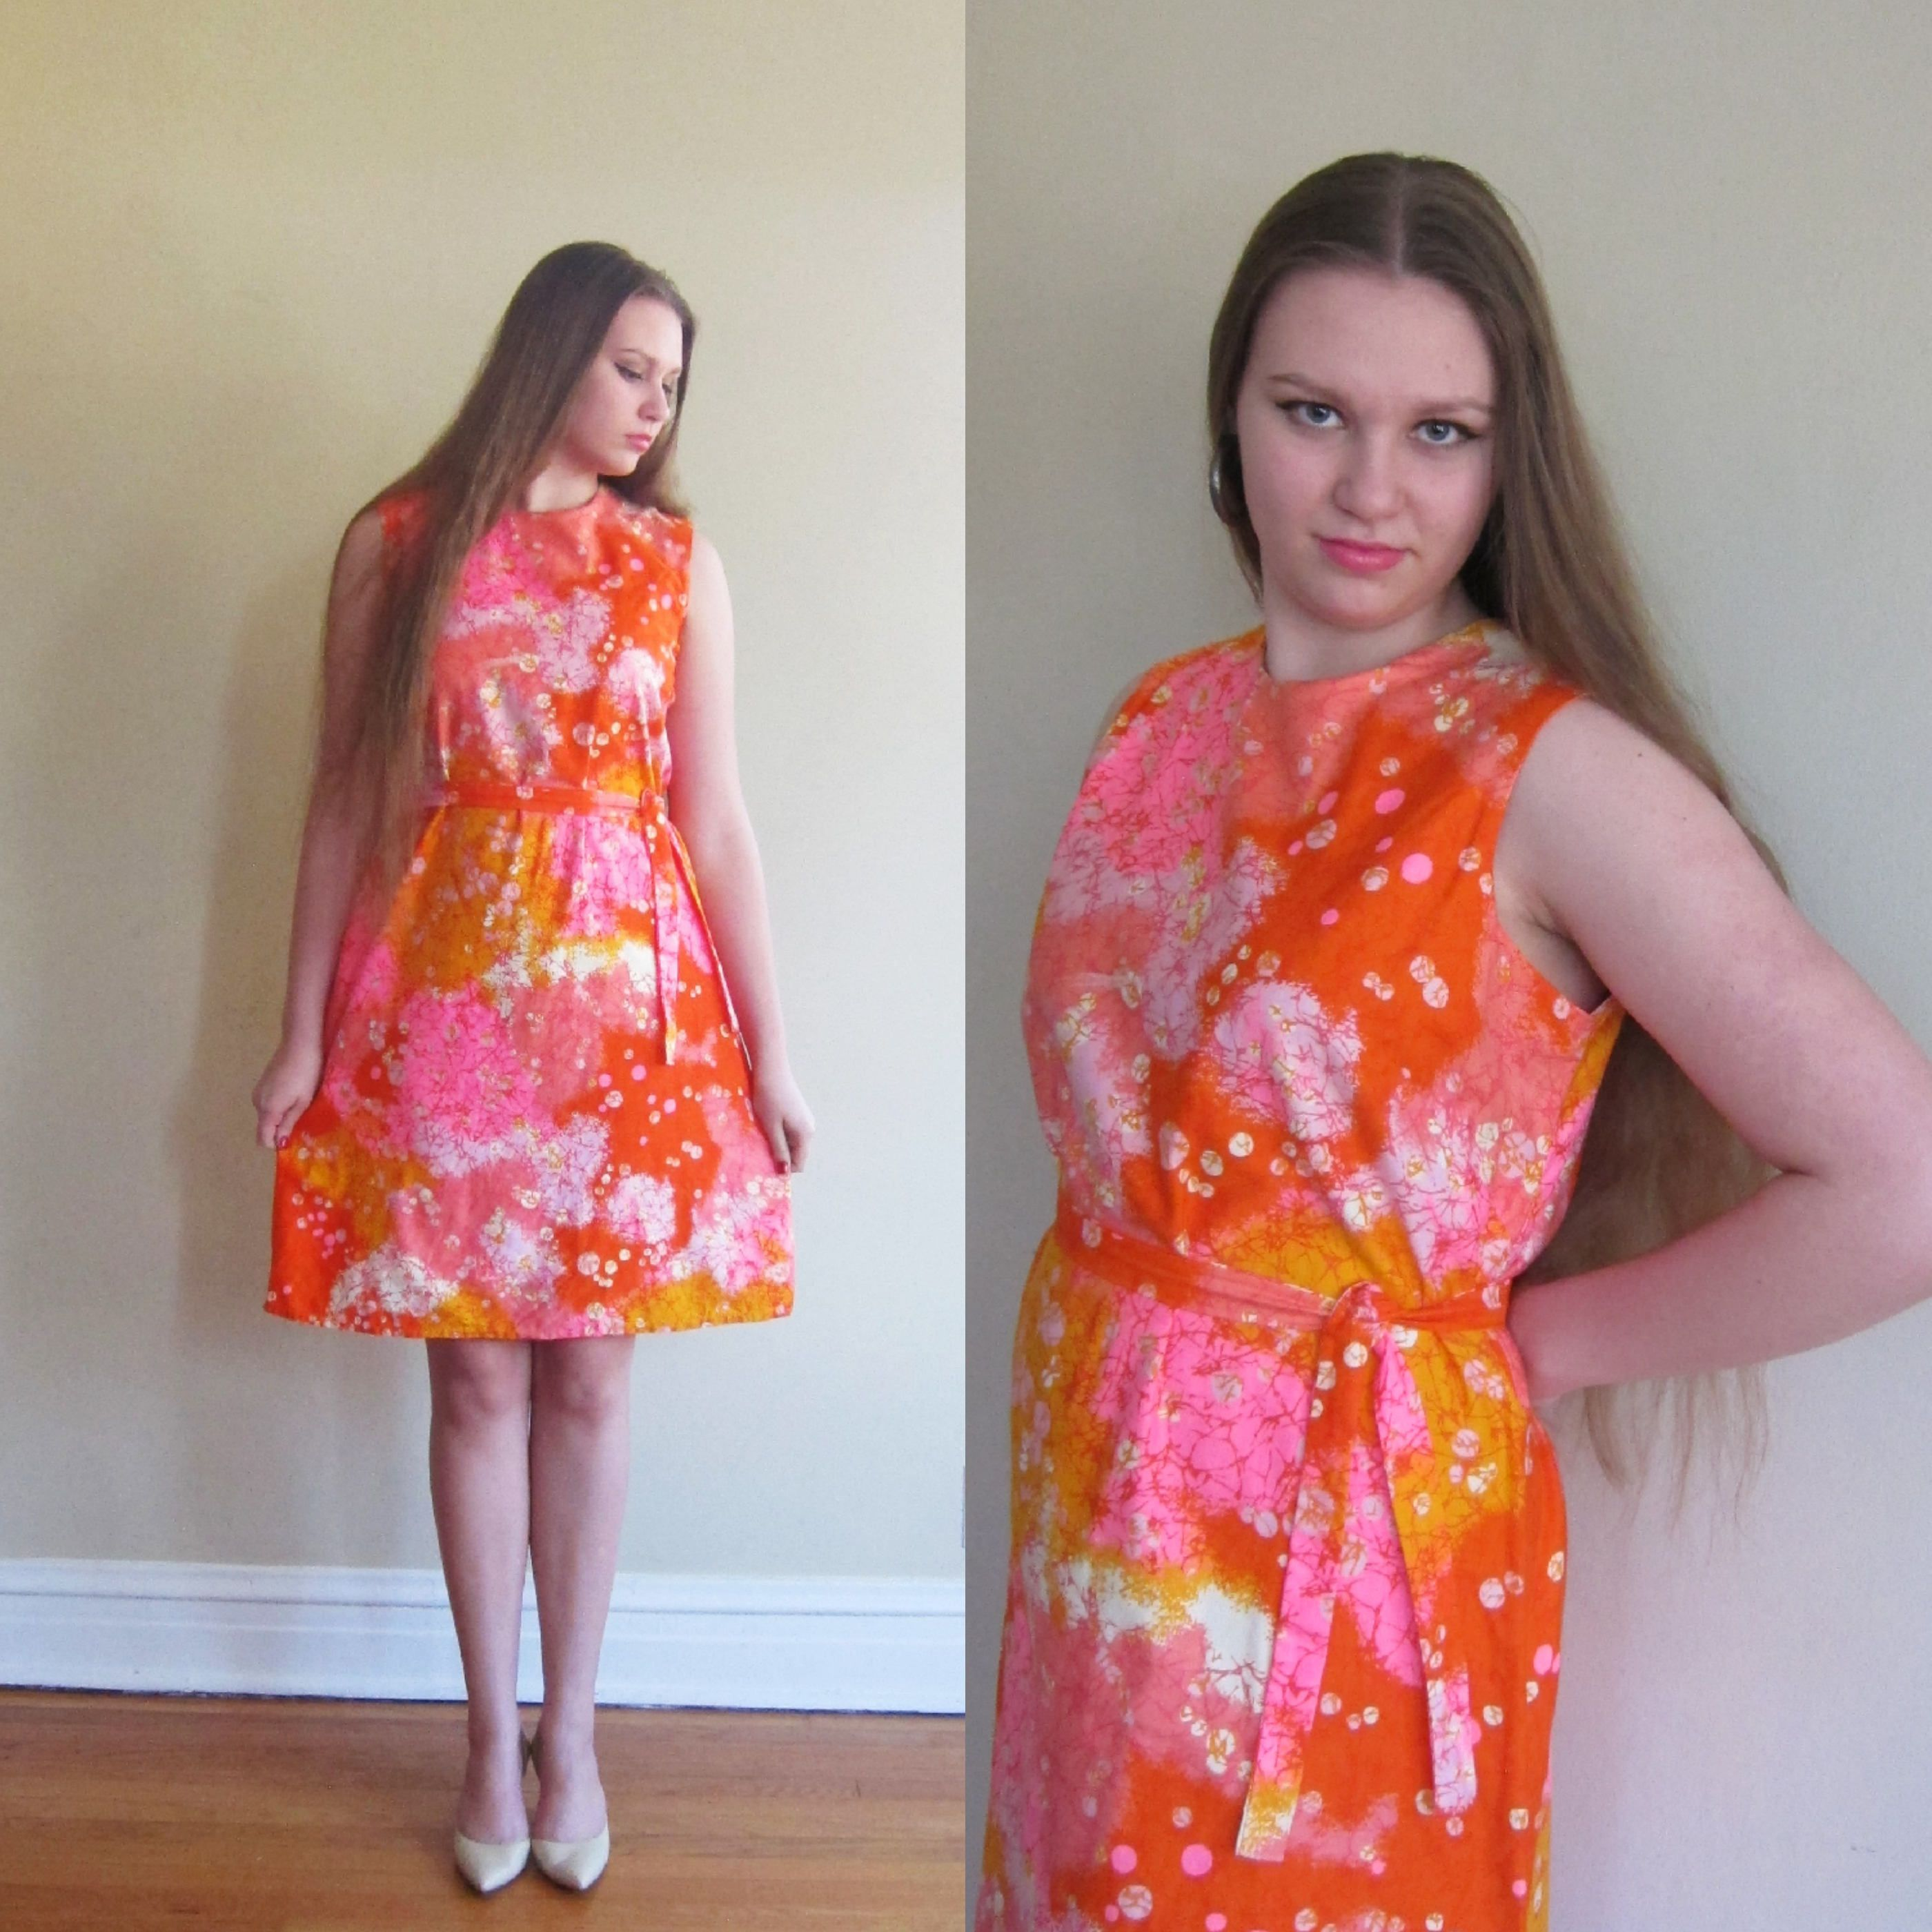 81cf119698a Vintage 1960s Red and Pink Shift Dress in Bright Floral Print   60s Sleeveless  Summer Sun Dress Loll Ease Cotton Print   Large Plus Size by BasyaBerkman  on ...